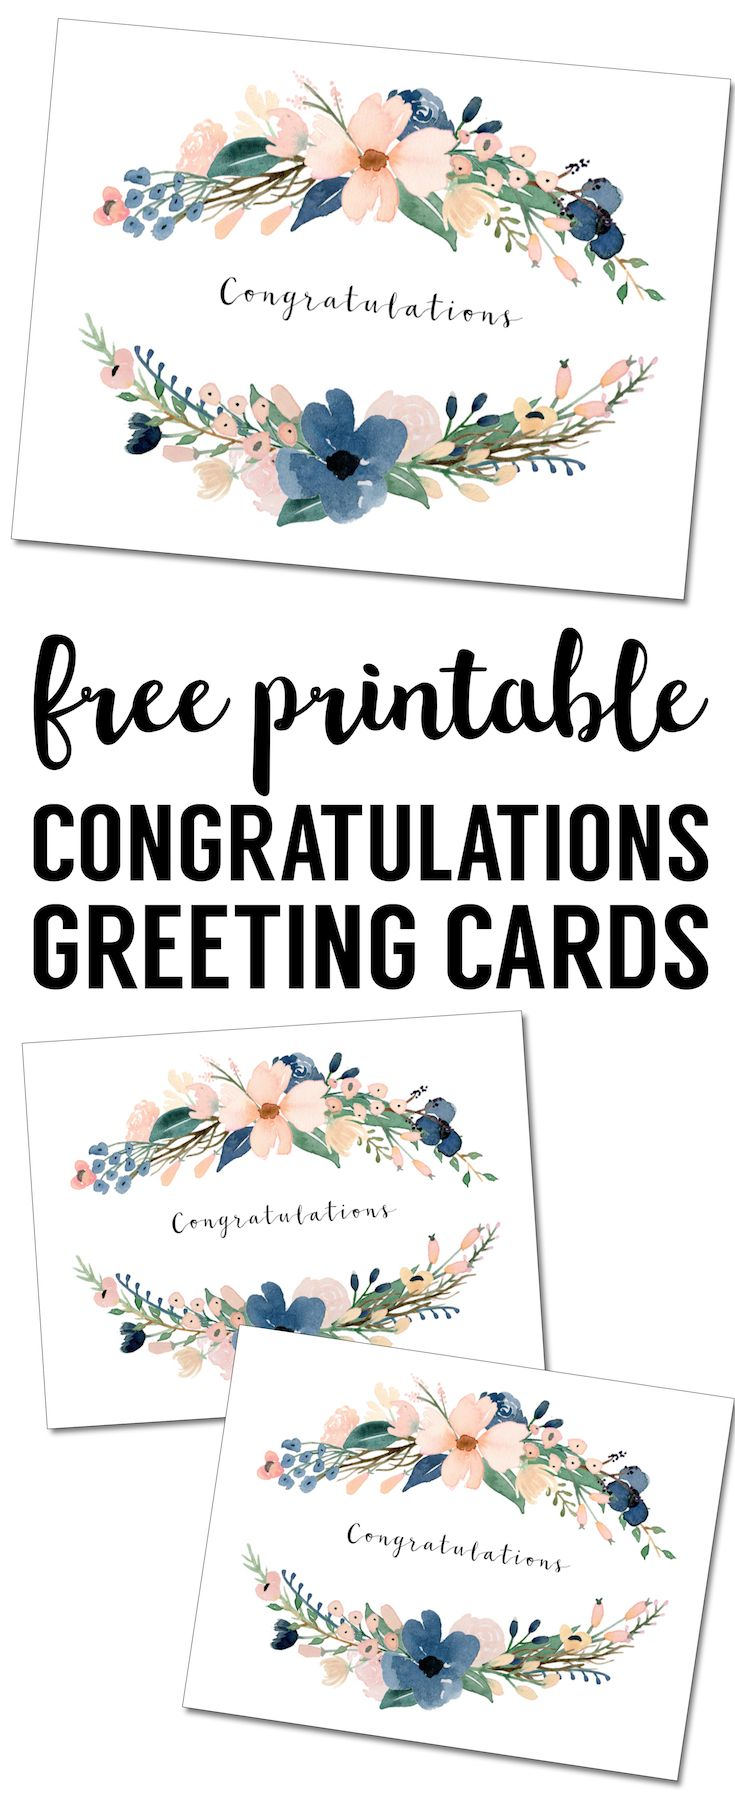 Congratulations card printable free printable greeting cards congratulations card printable free printable greeting cards diy congratulations greeting cards for graduation baby shower bridal shower or wedding m4hsunfo